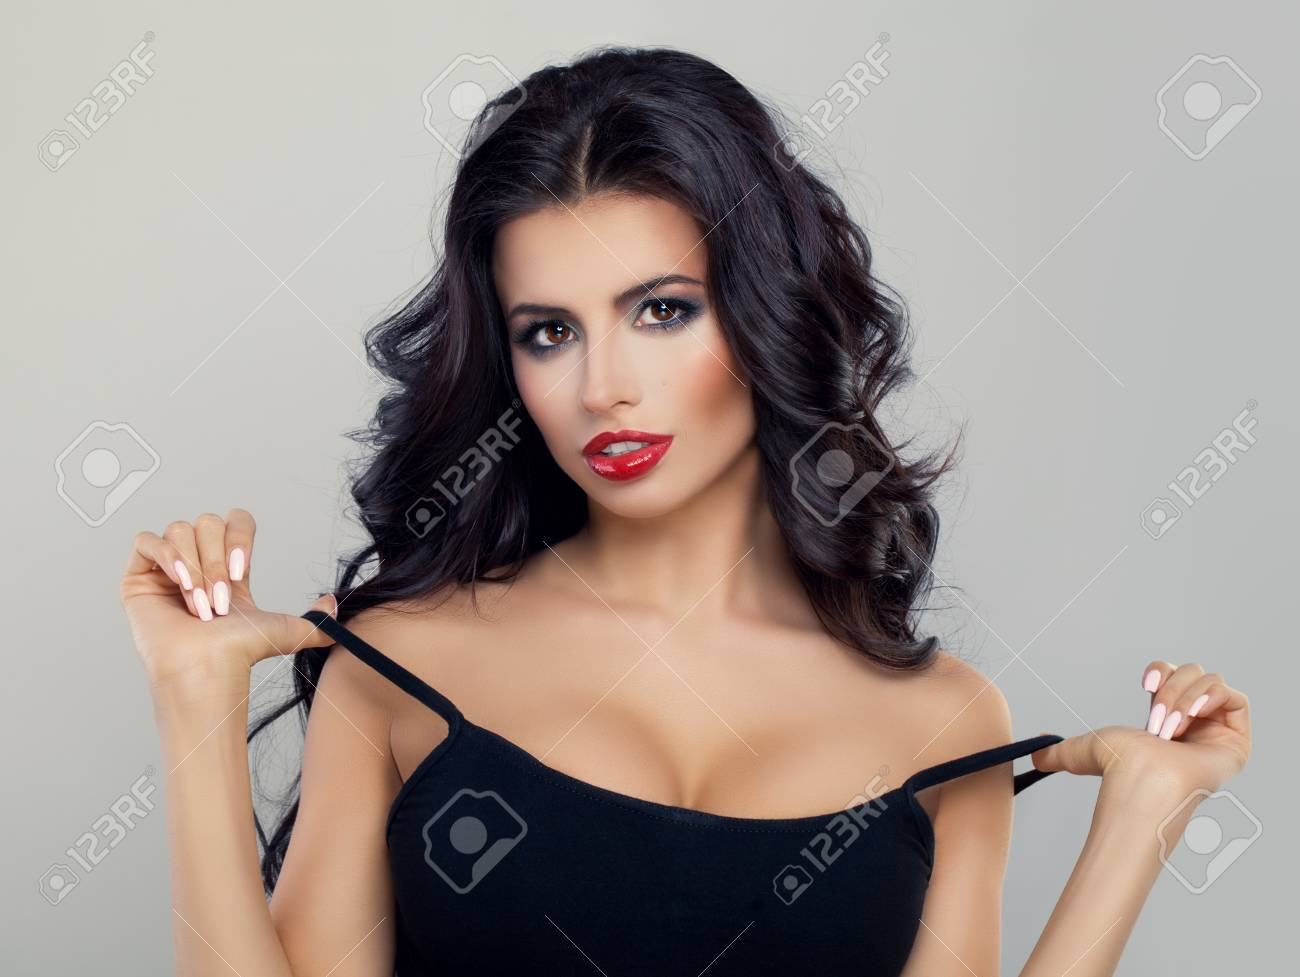 Beautiful Model With Curly Hairstyle Red Lips Makeup And Black